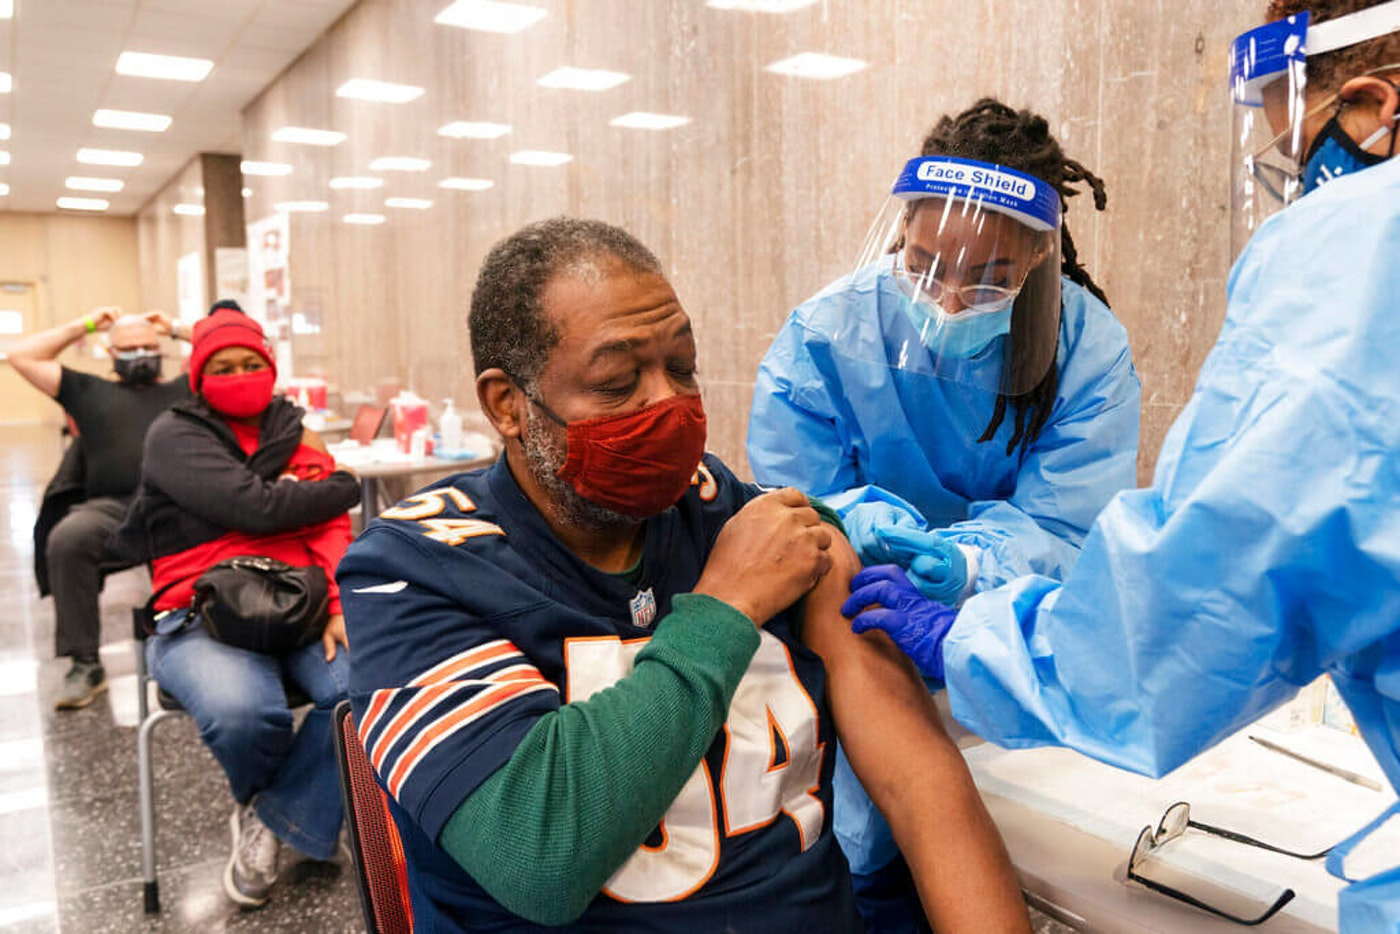 Peter Thomas, 58, of Washington, receives his second dose of the COVID-19 vaccine at a clinic at Howard University in February 2021 (Image via AP Photo/Jacquelyn Martin)